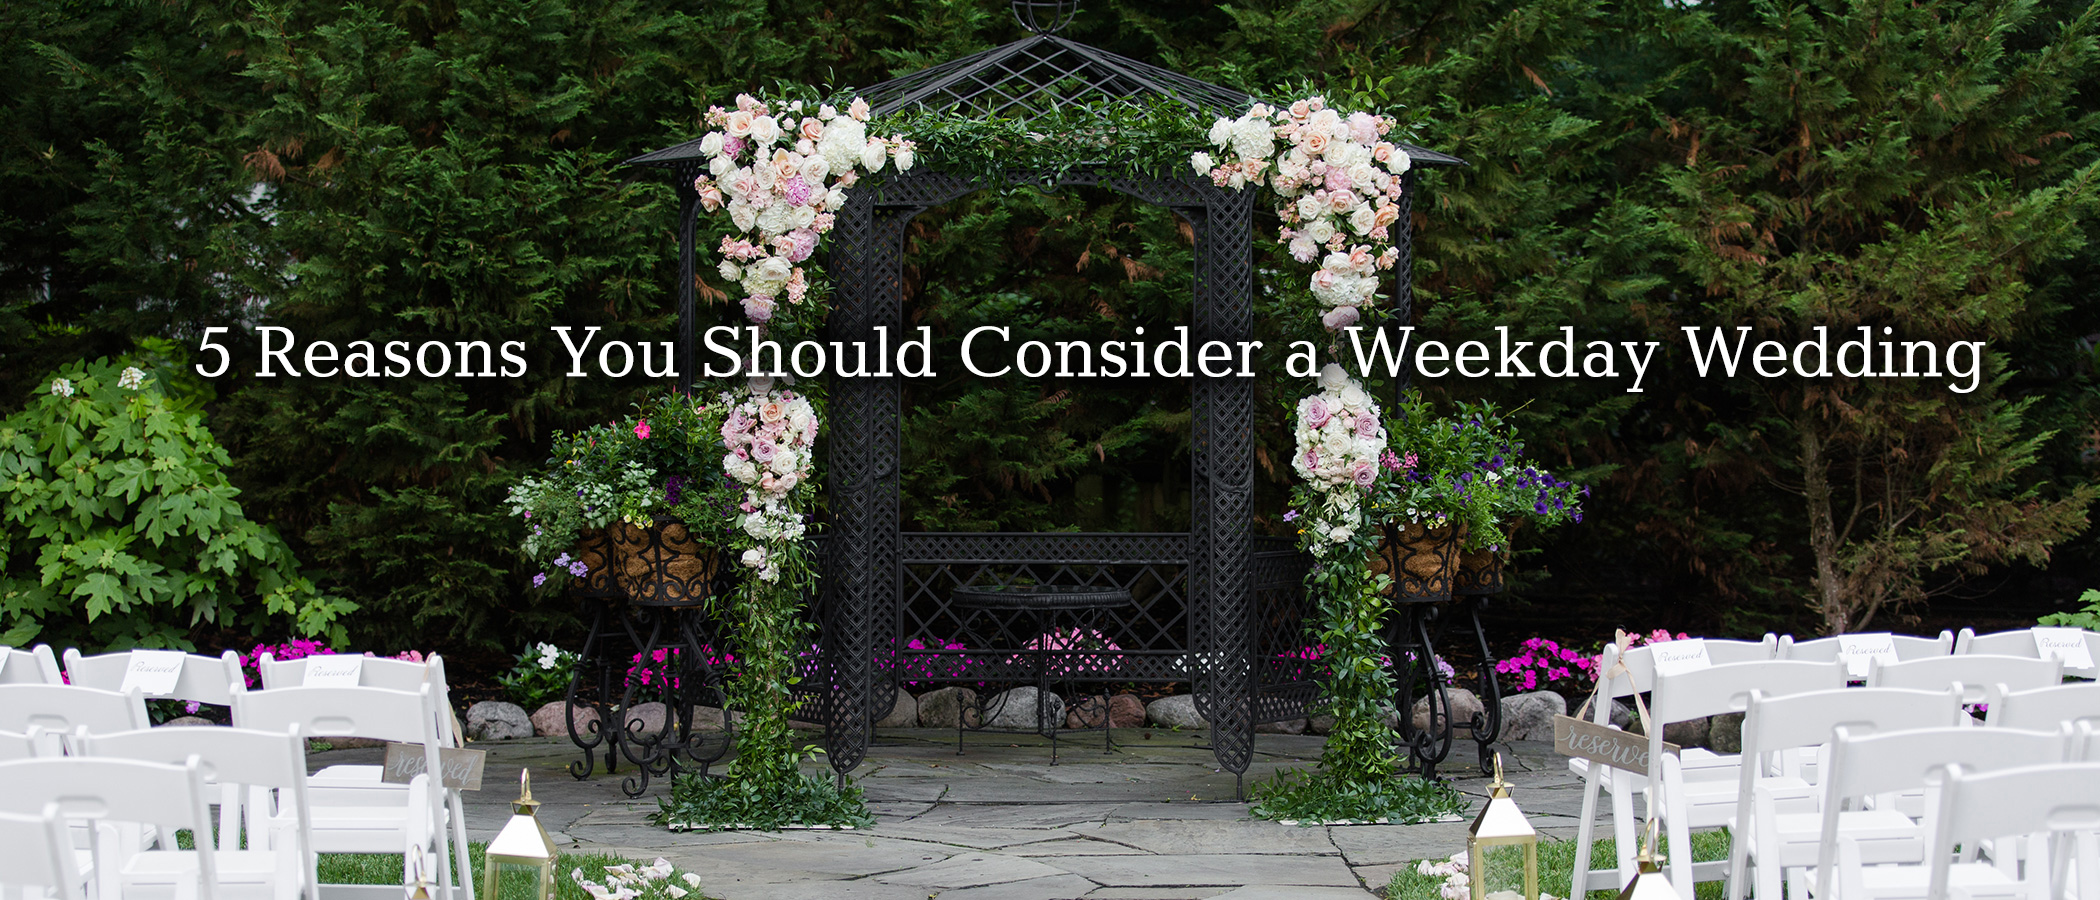 Five Reasons Why You Should Get Married on a Weekday